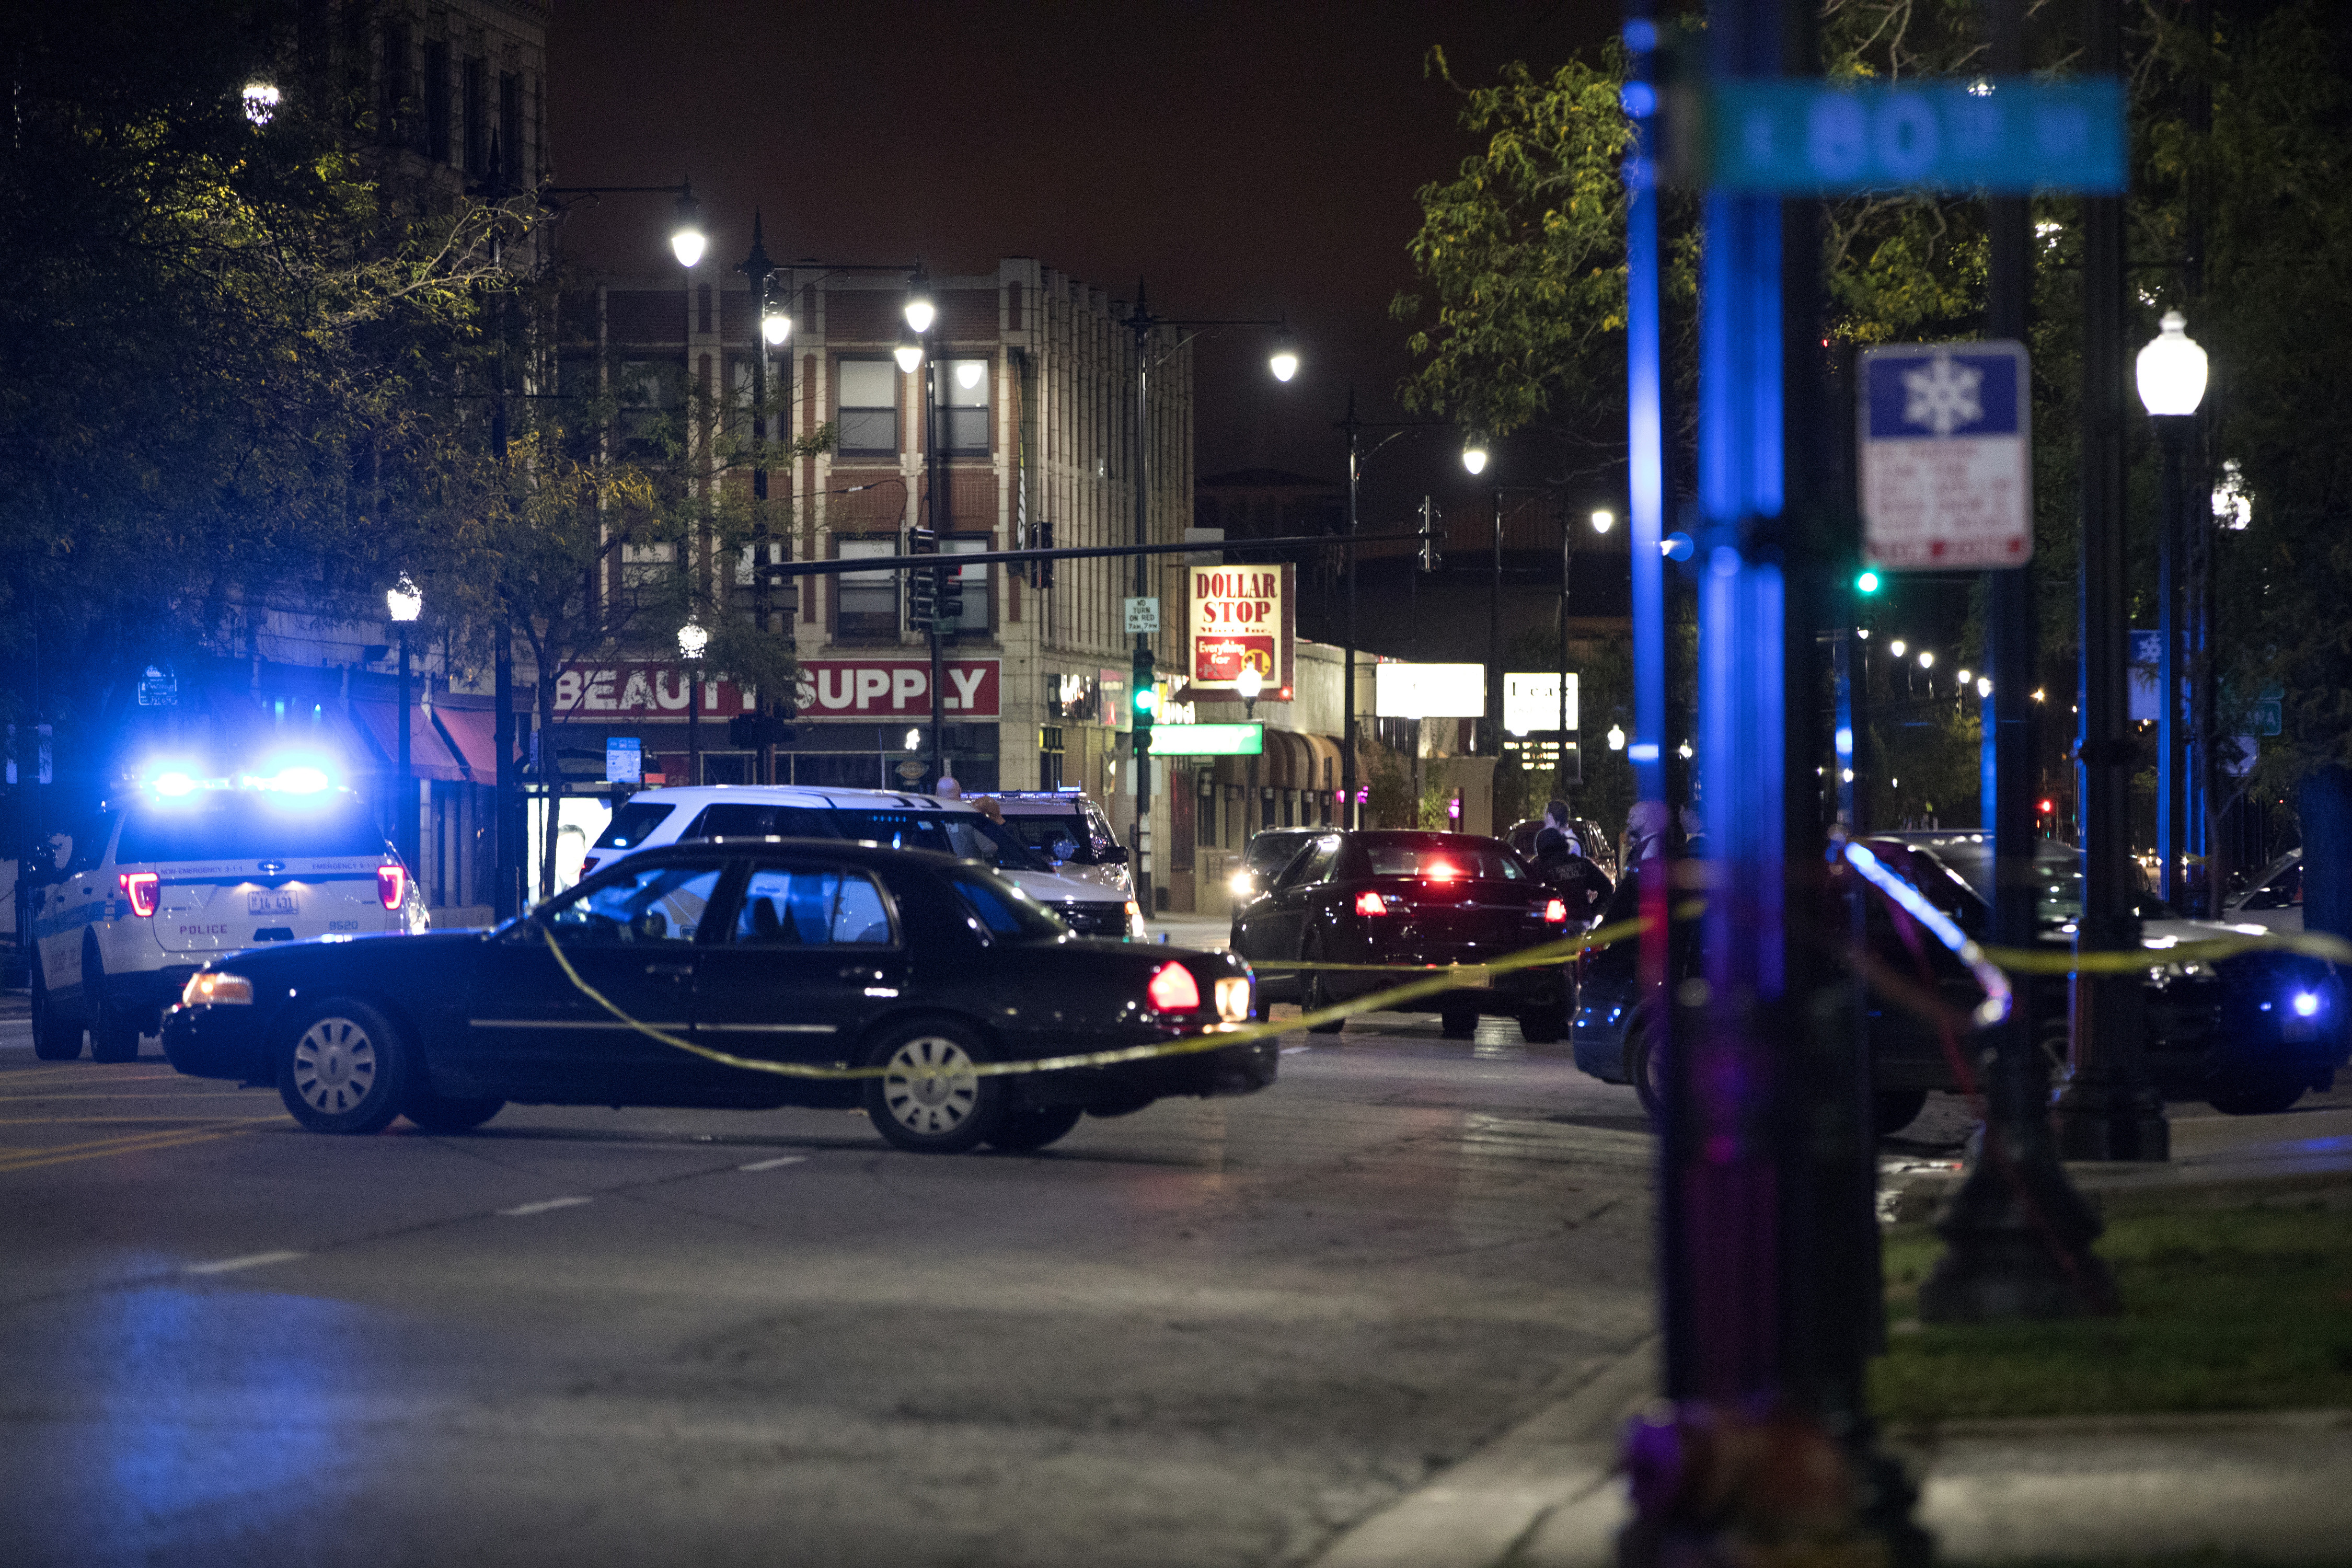 22 shot in Chicago over the weekend, 9 fatally Featured